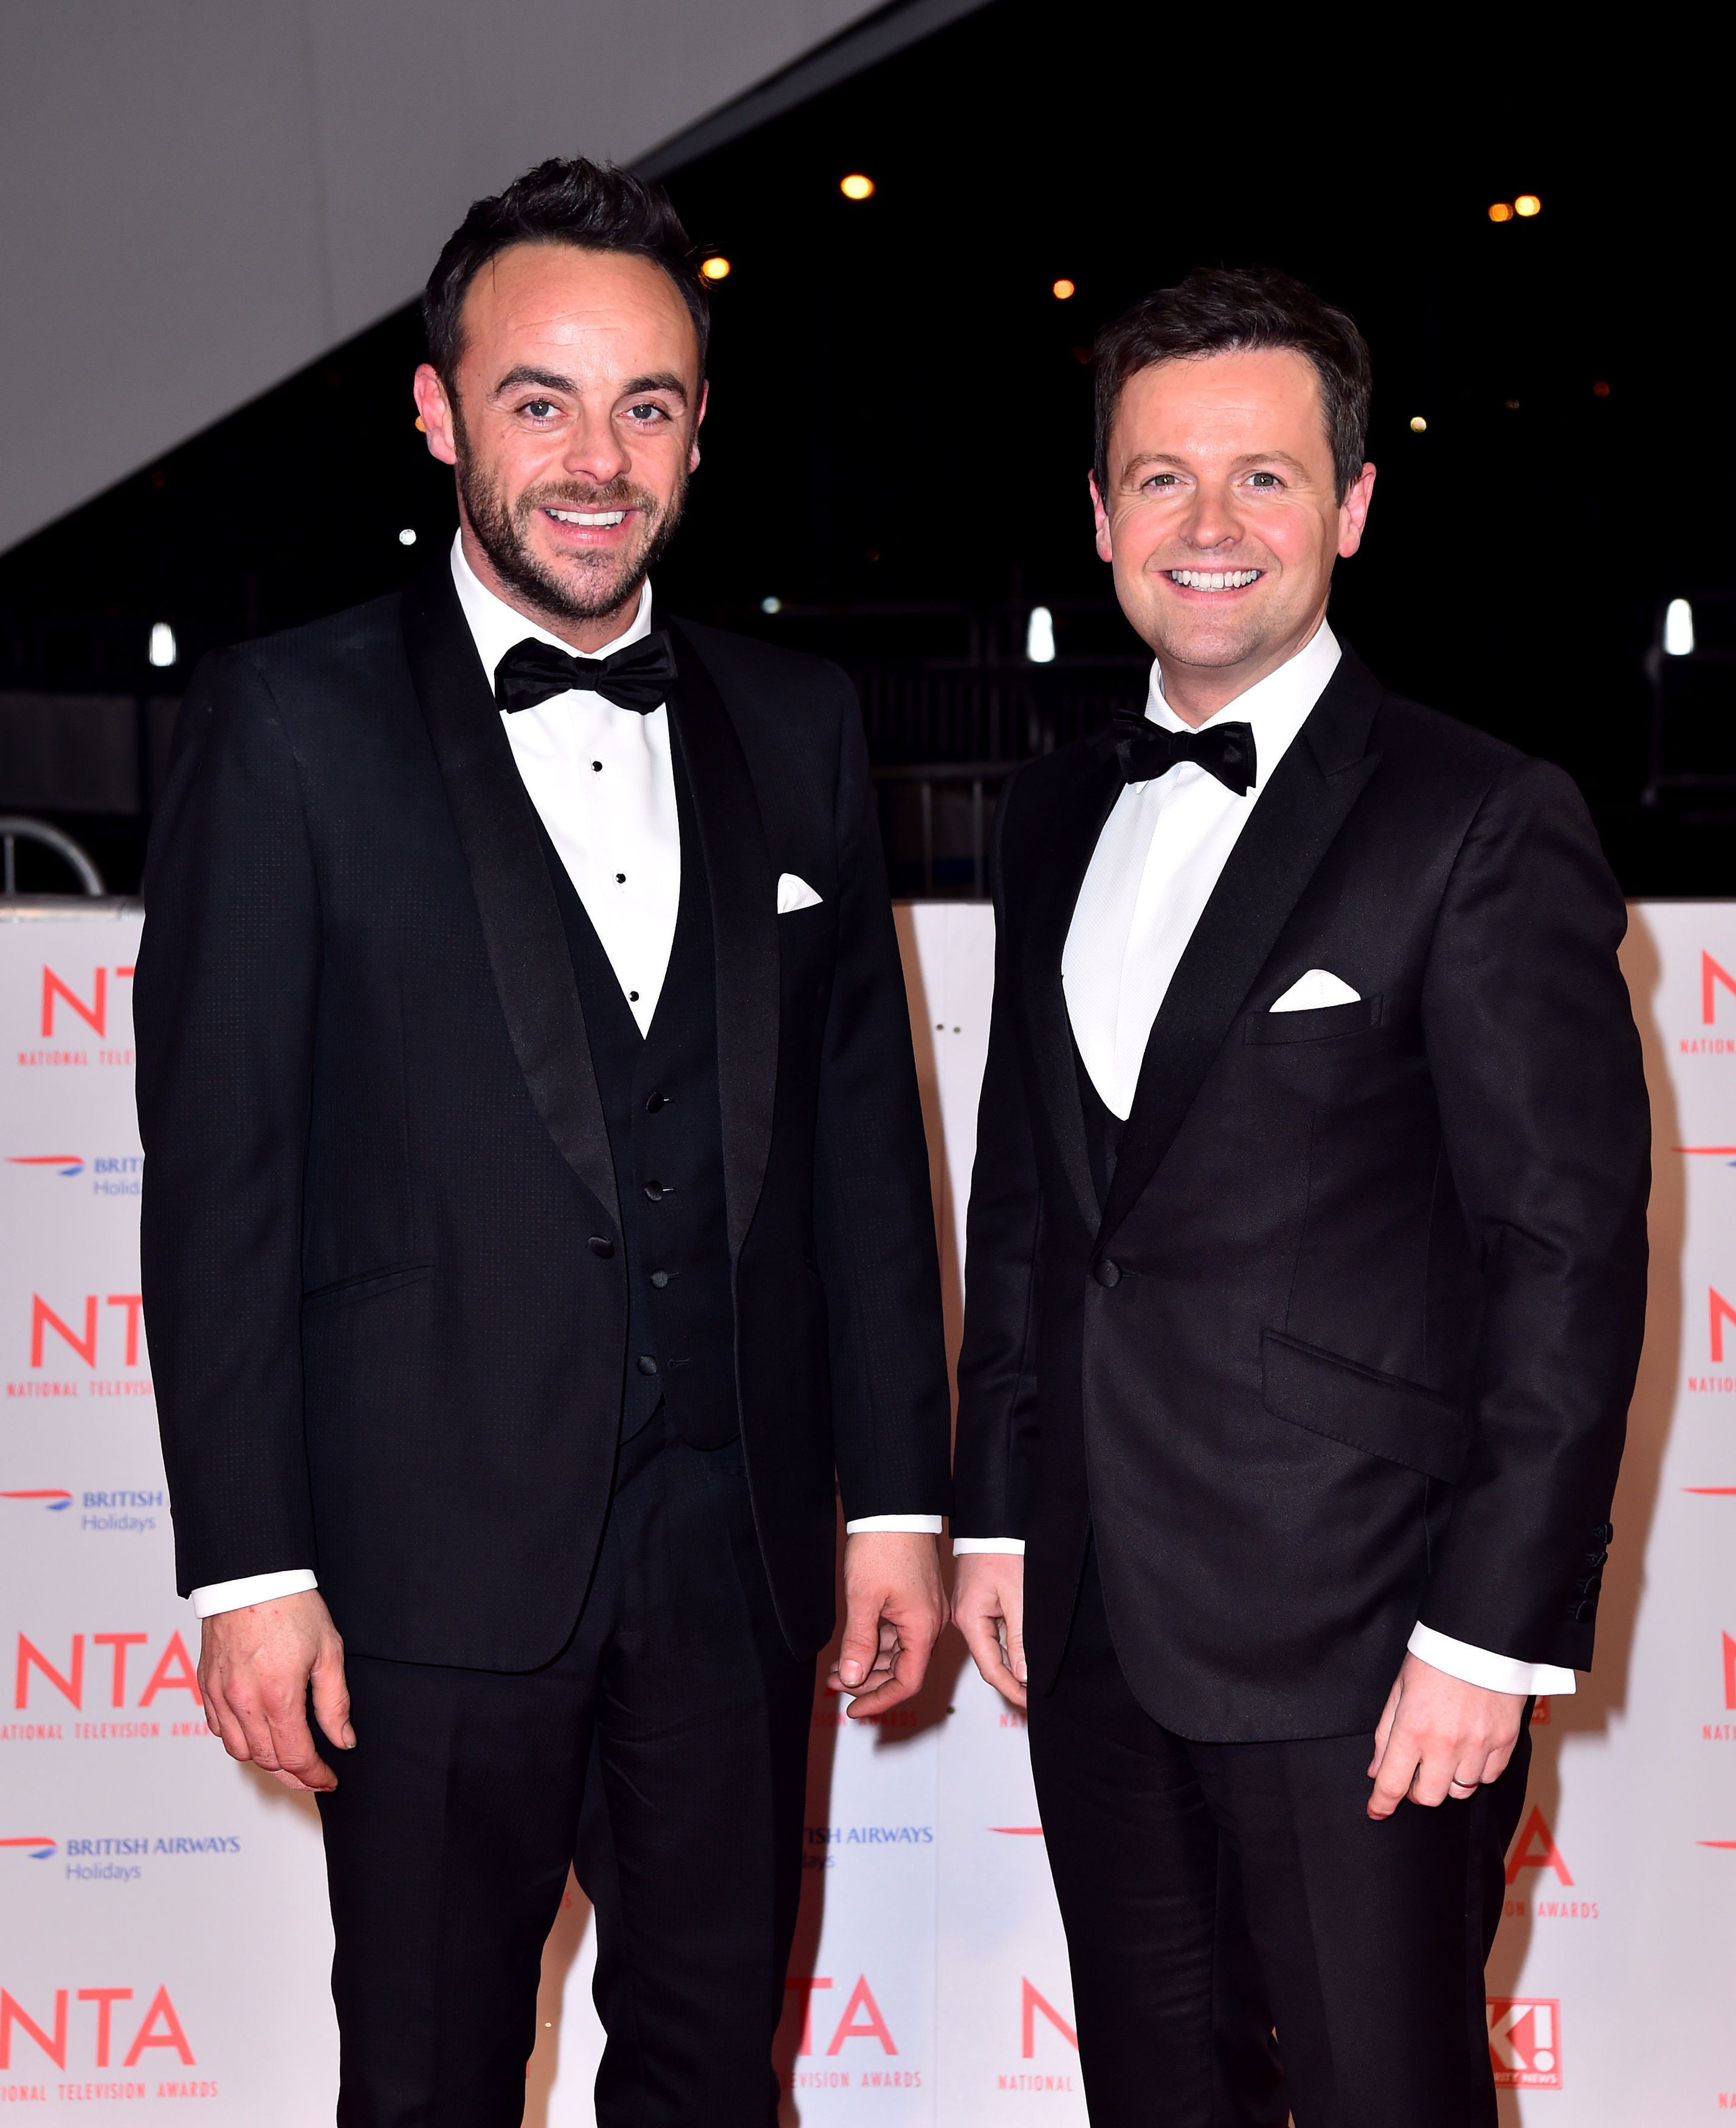 ITV Brands Claims Ant And Dec Will Be Replaced On 'I'm A Celebrity' 'Utter